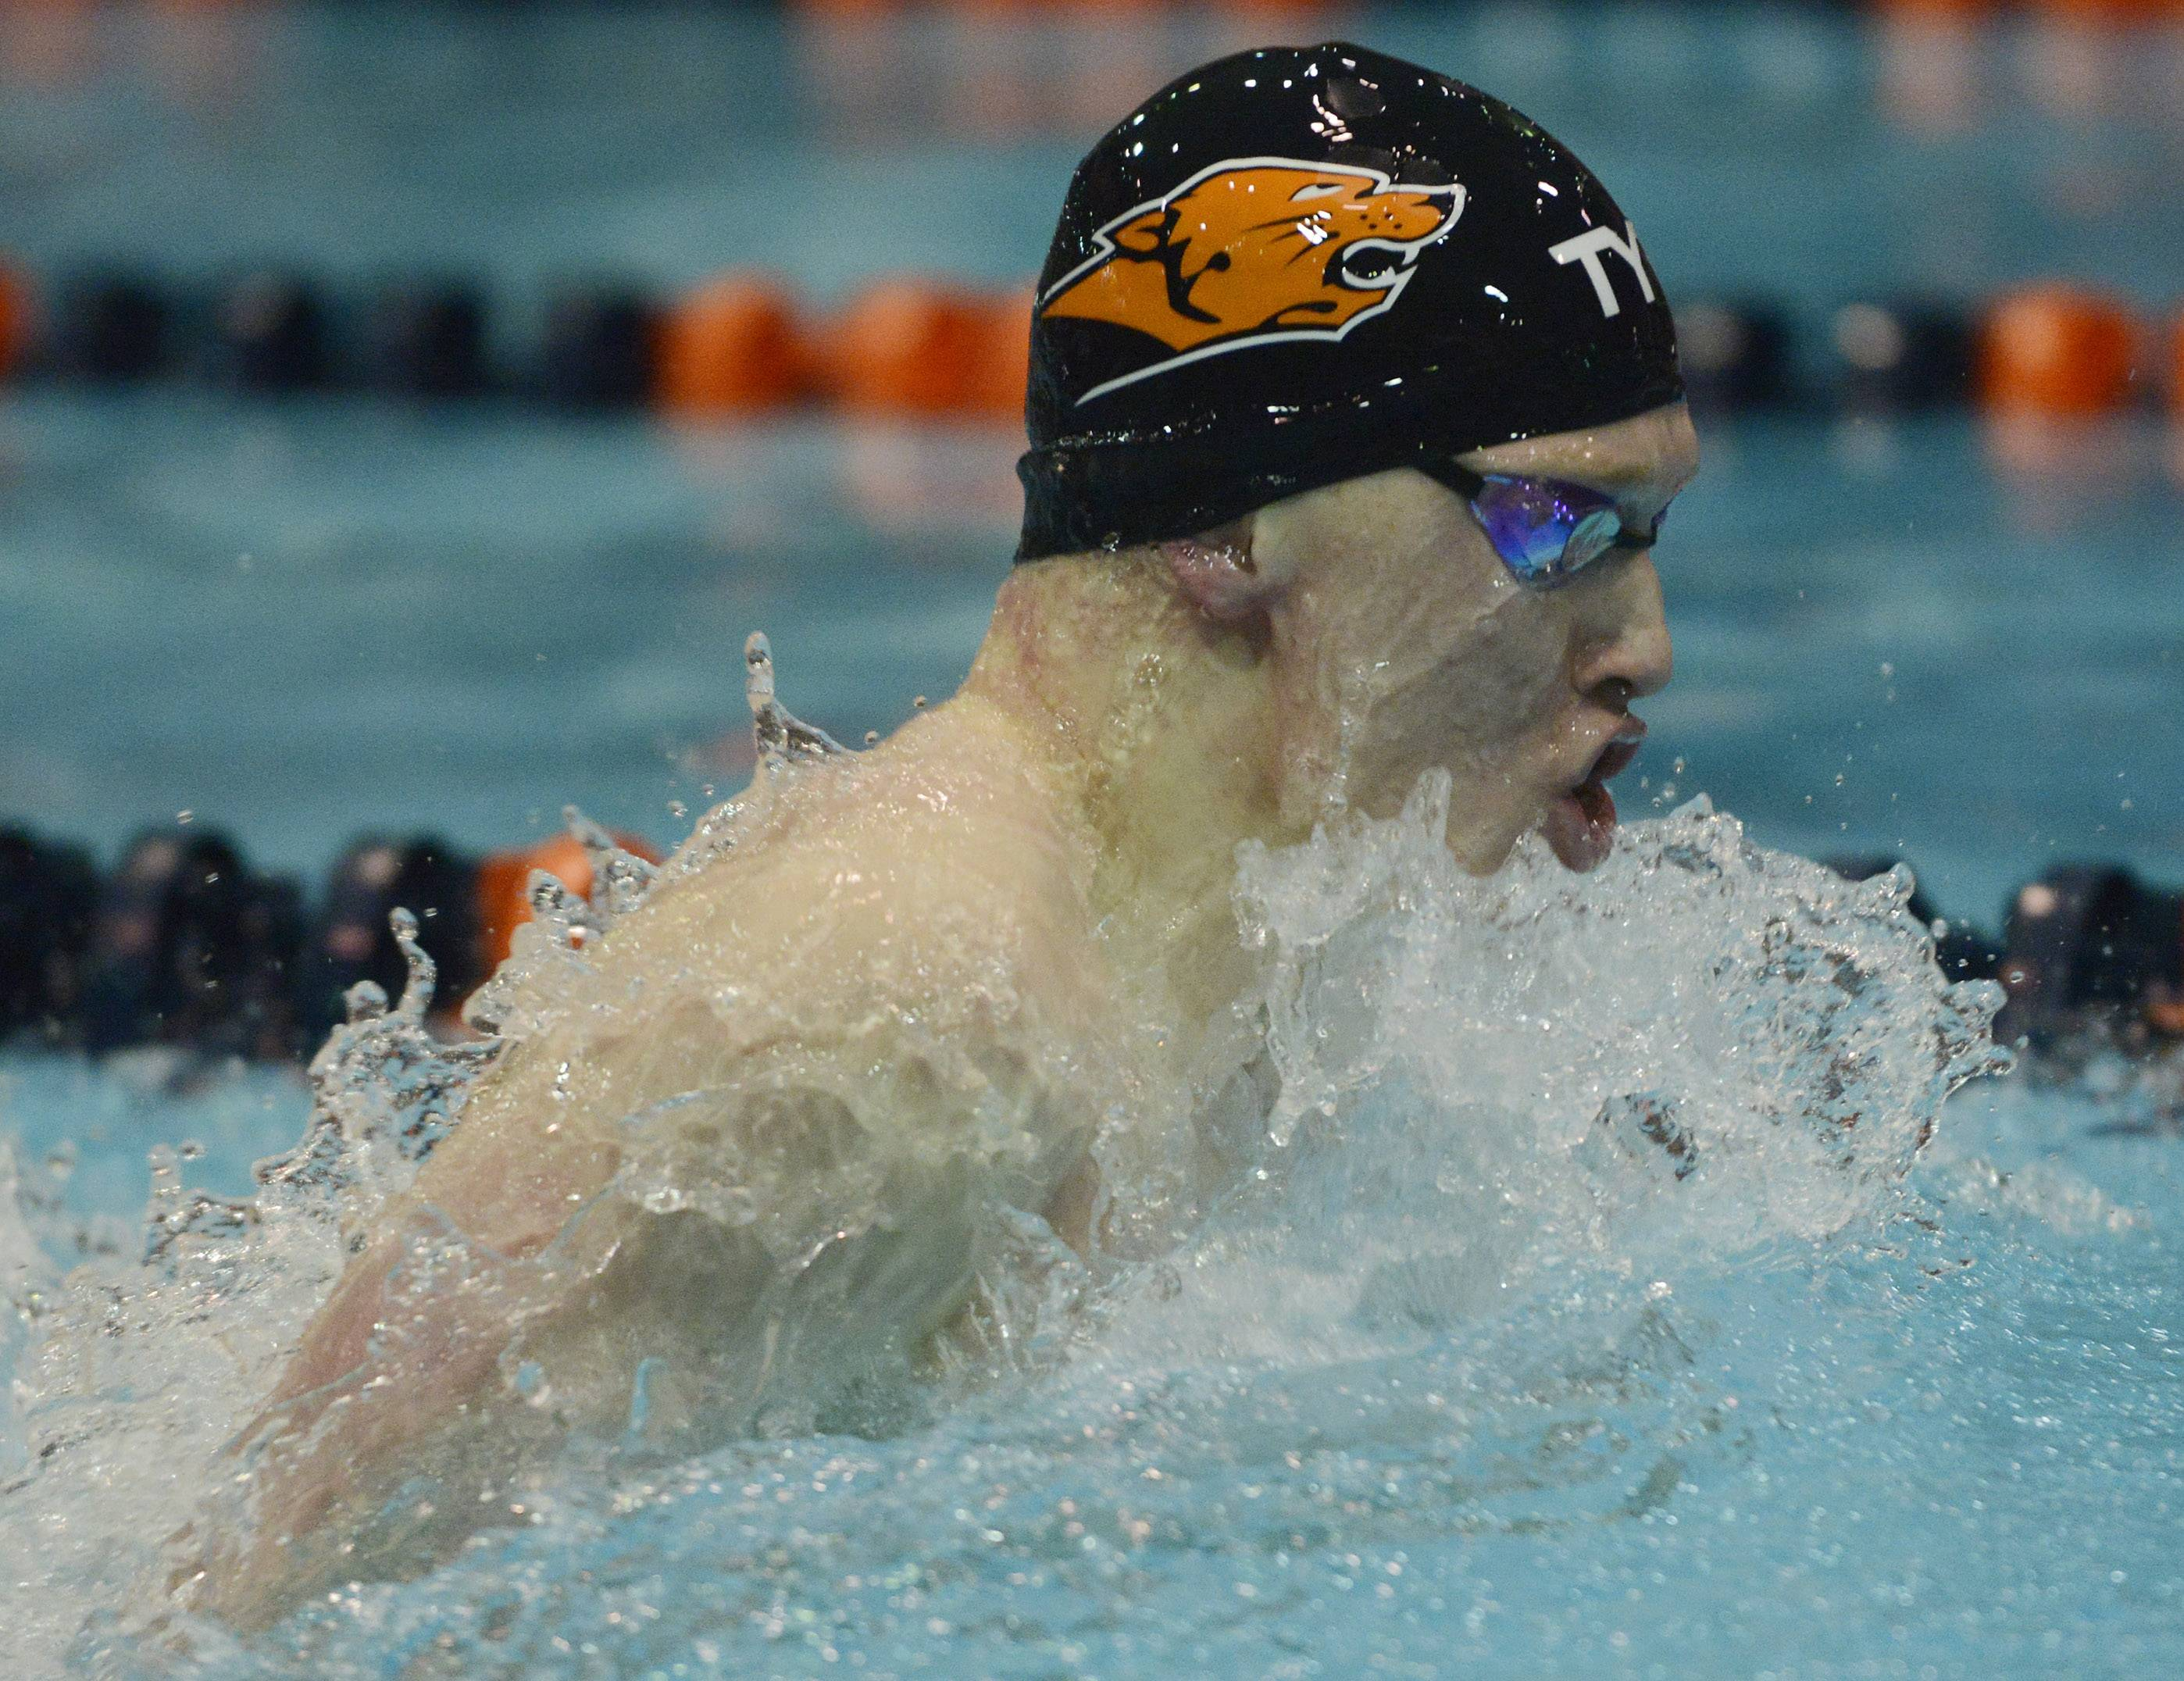 Libertyville's Bobby Snader swims the breaststroke leg of the 200-yard medley relay during the boys state swimming meet at Evanston High School Saturday.